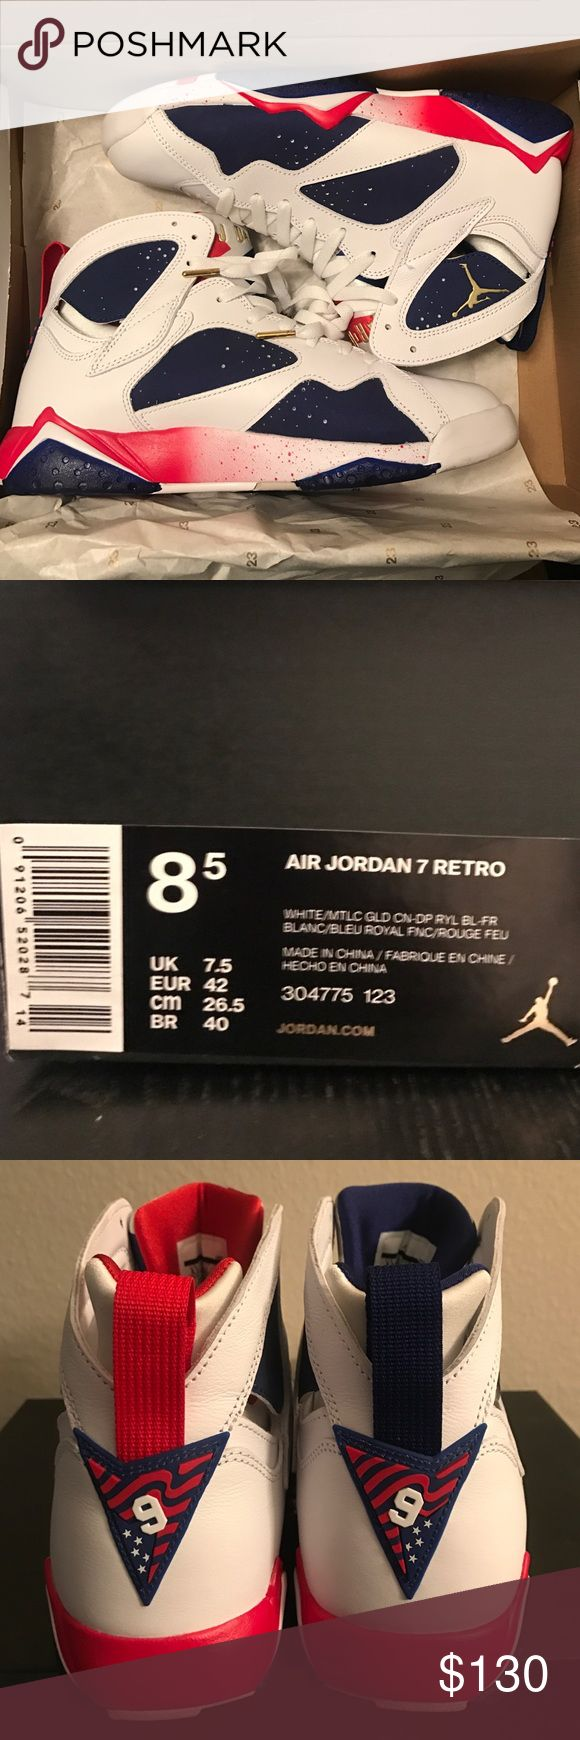 Air Jordan 7 Retro 2016 Olympic Alternate Air Jordan 7 Retro. Brand new only worn once! Comes with the box. Nike Shoes Sneakers